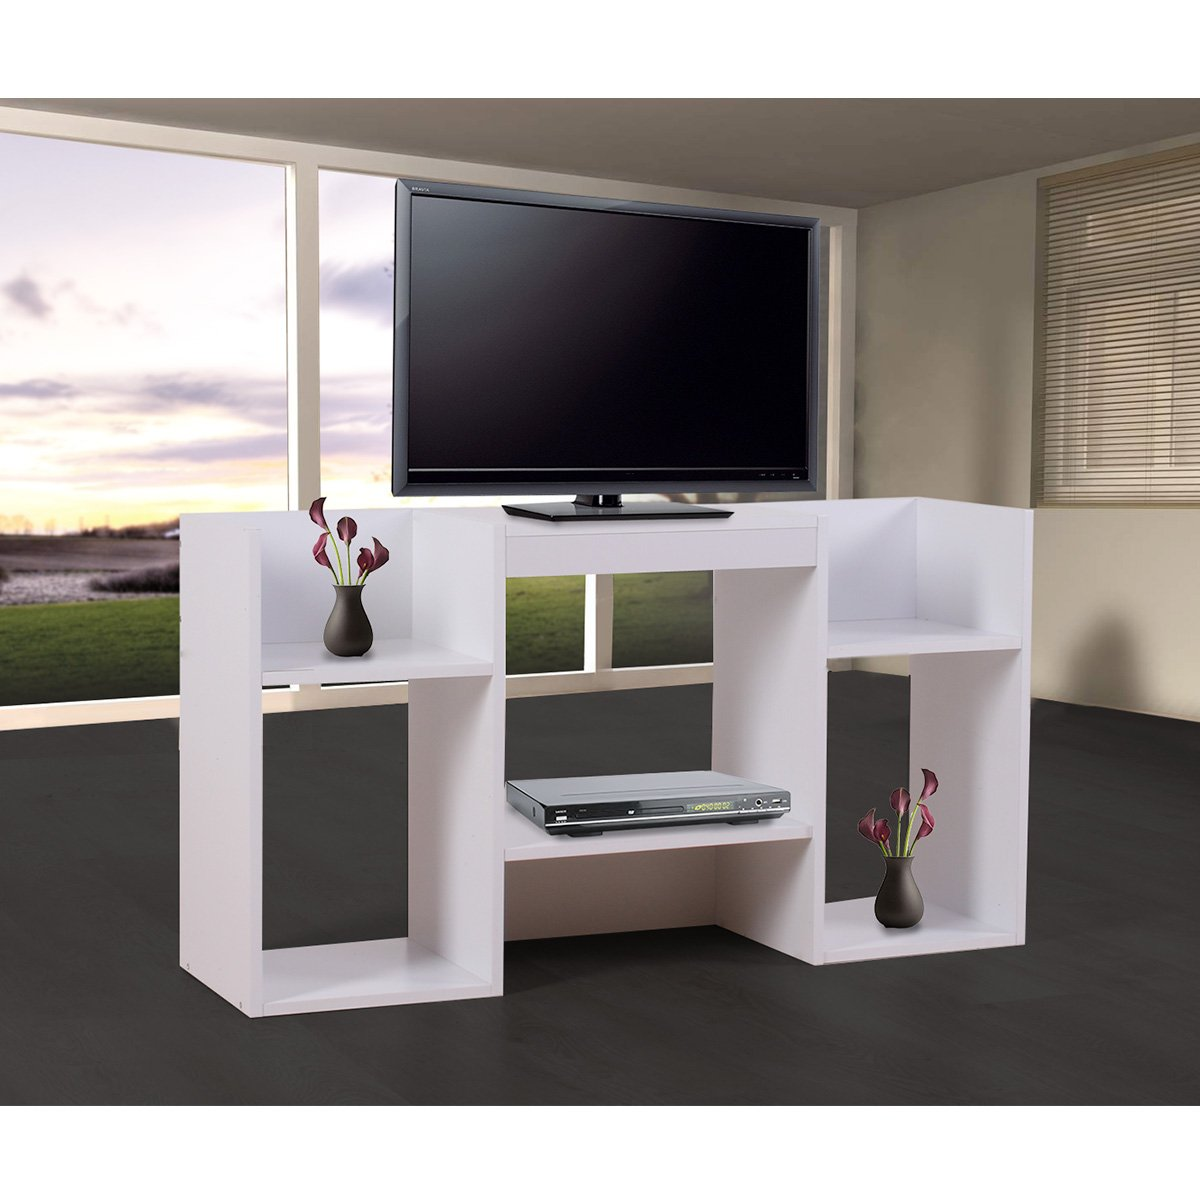 Mueble para tv soporte para tv de dise o 109x59x30 cm blanca for Muebles on line de diseno